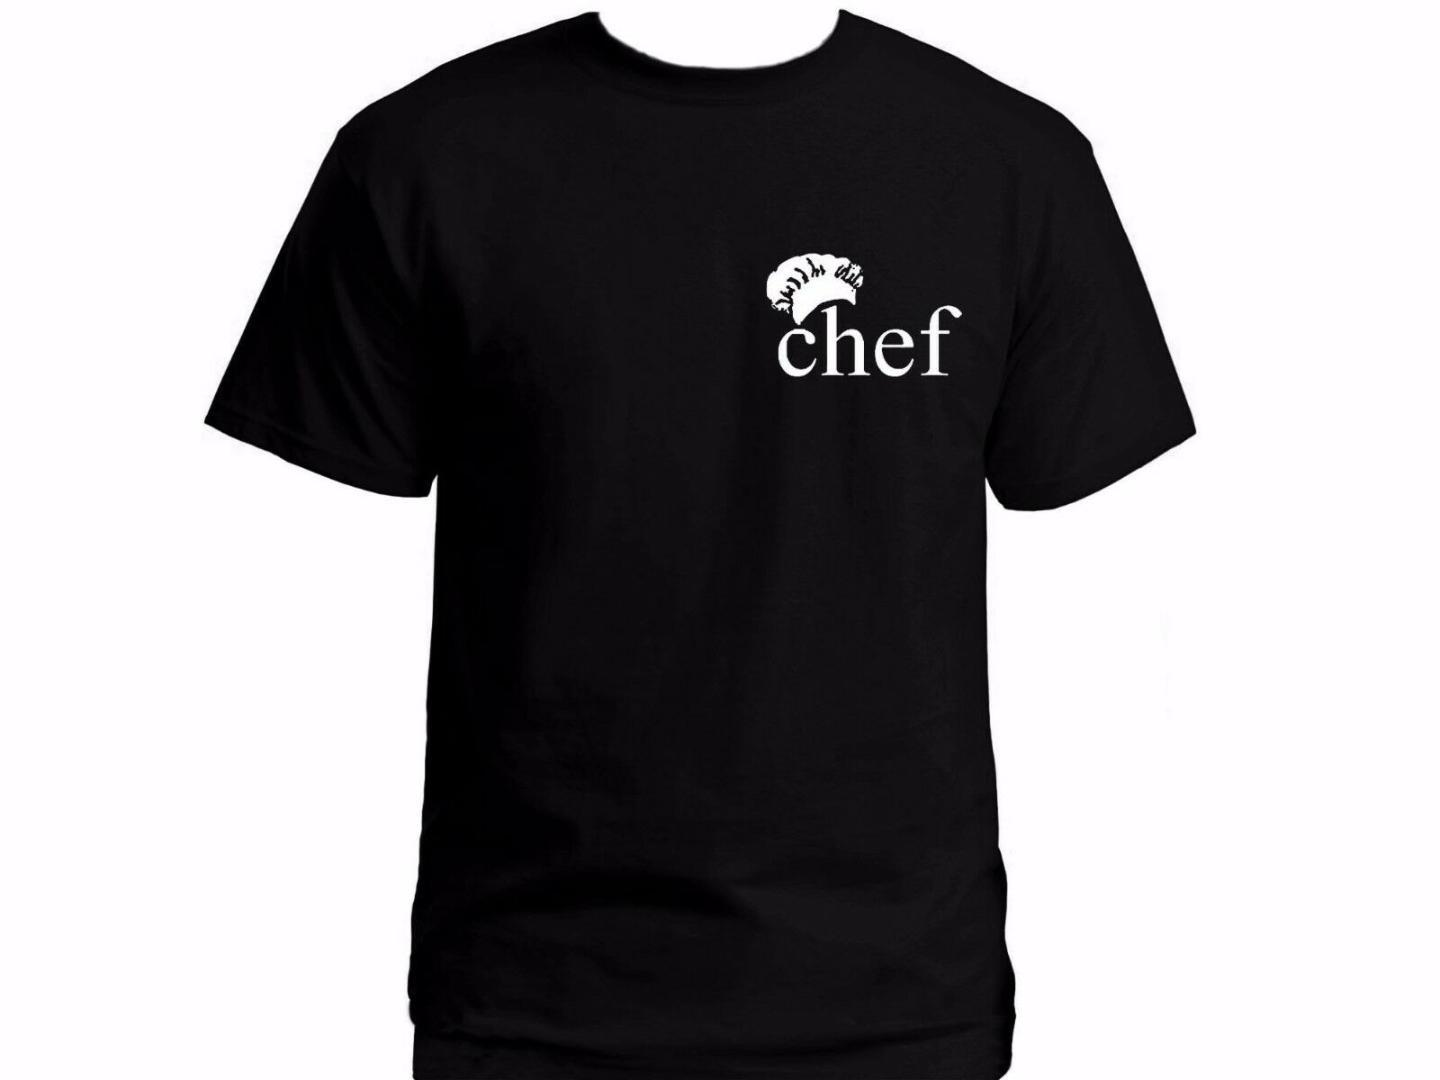 Chef graphic black 100% cotton graphic t-shirt Funny cooking gifts